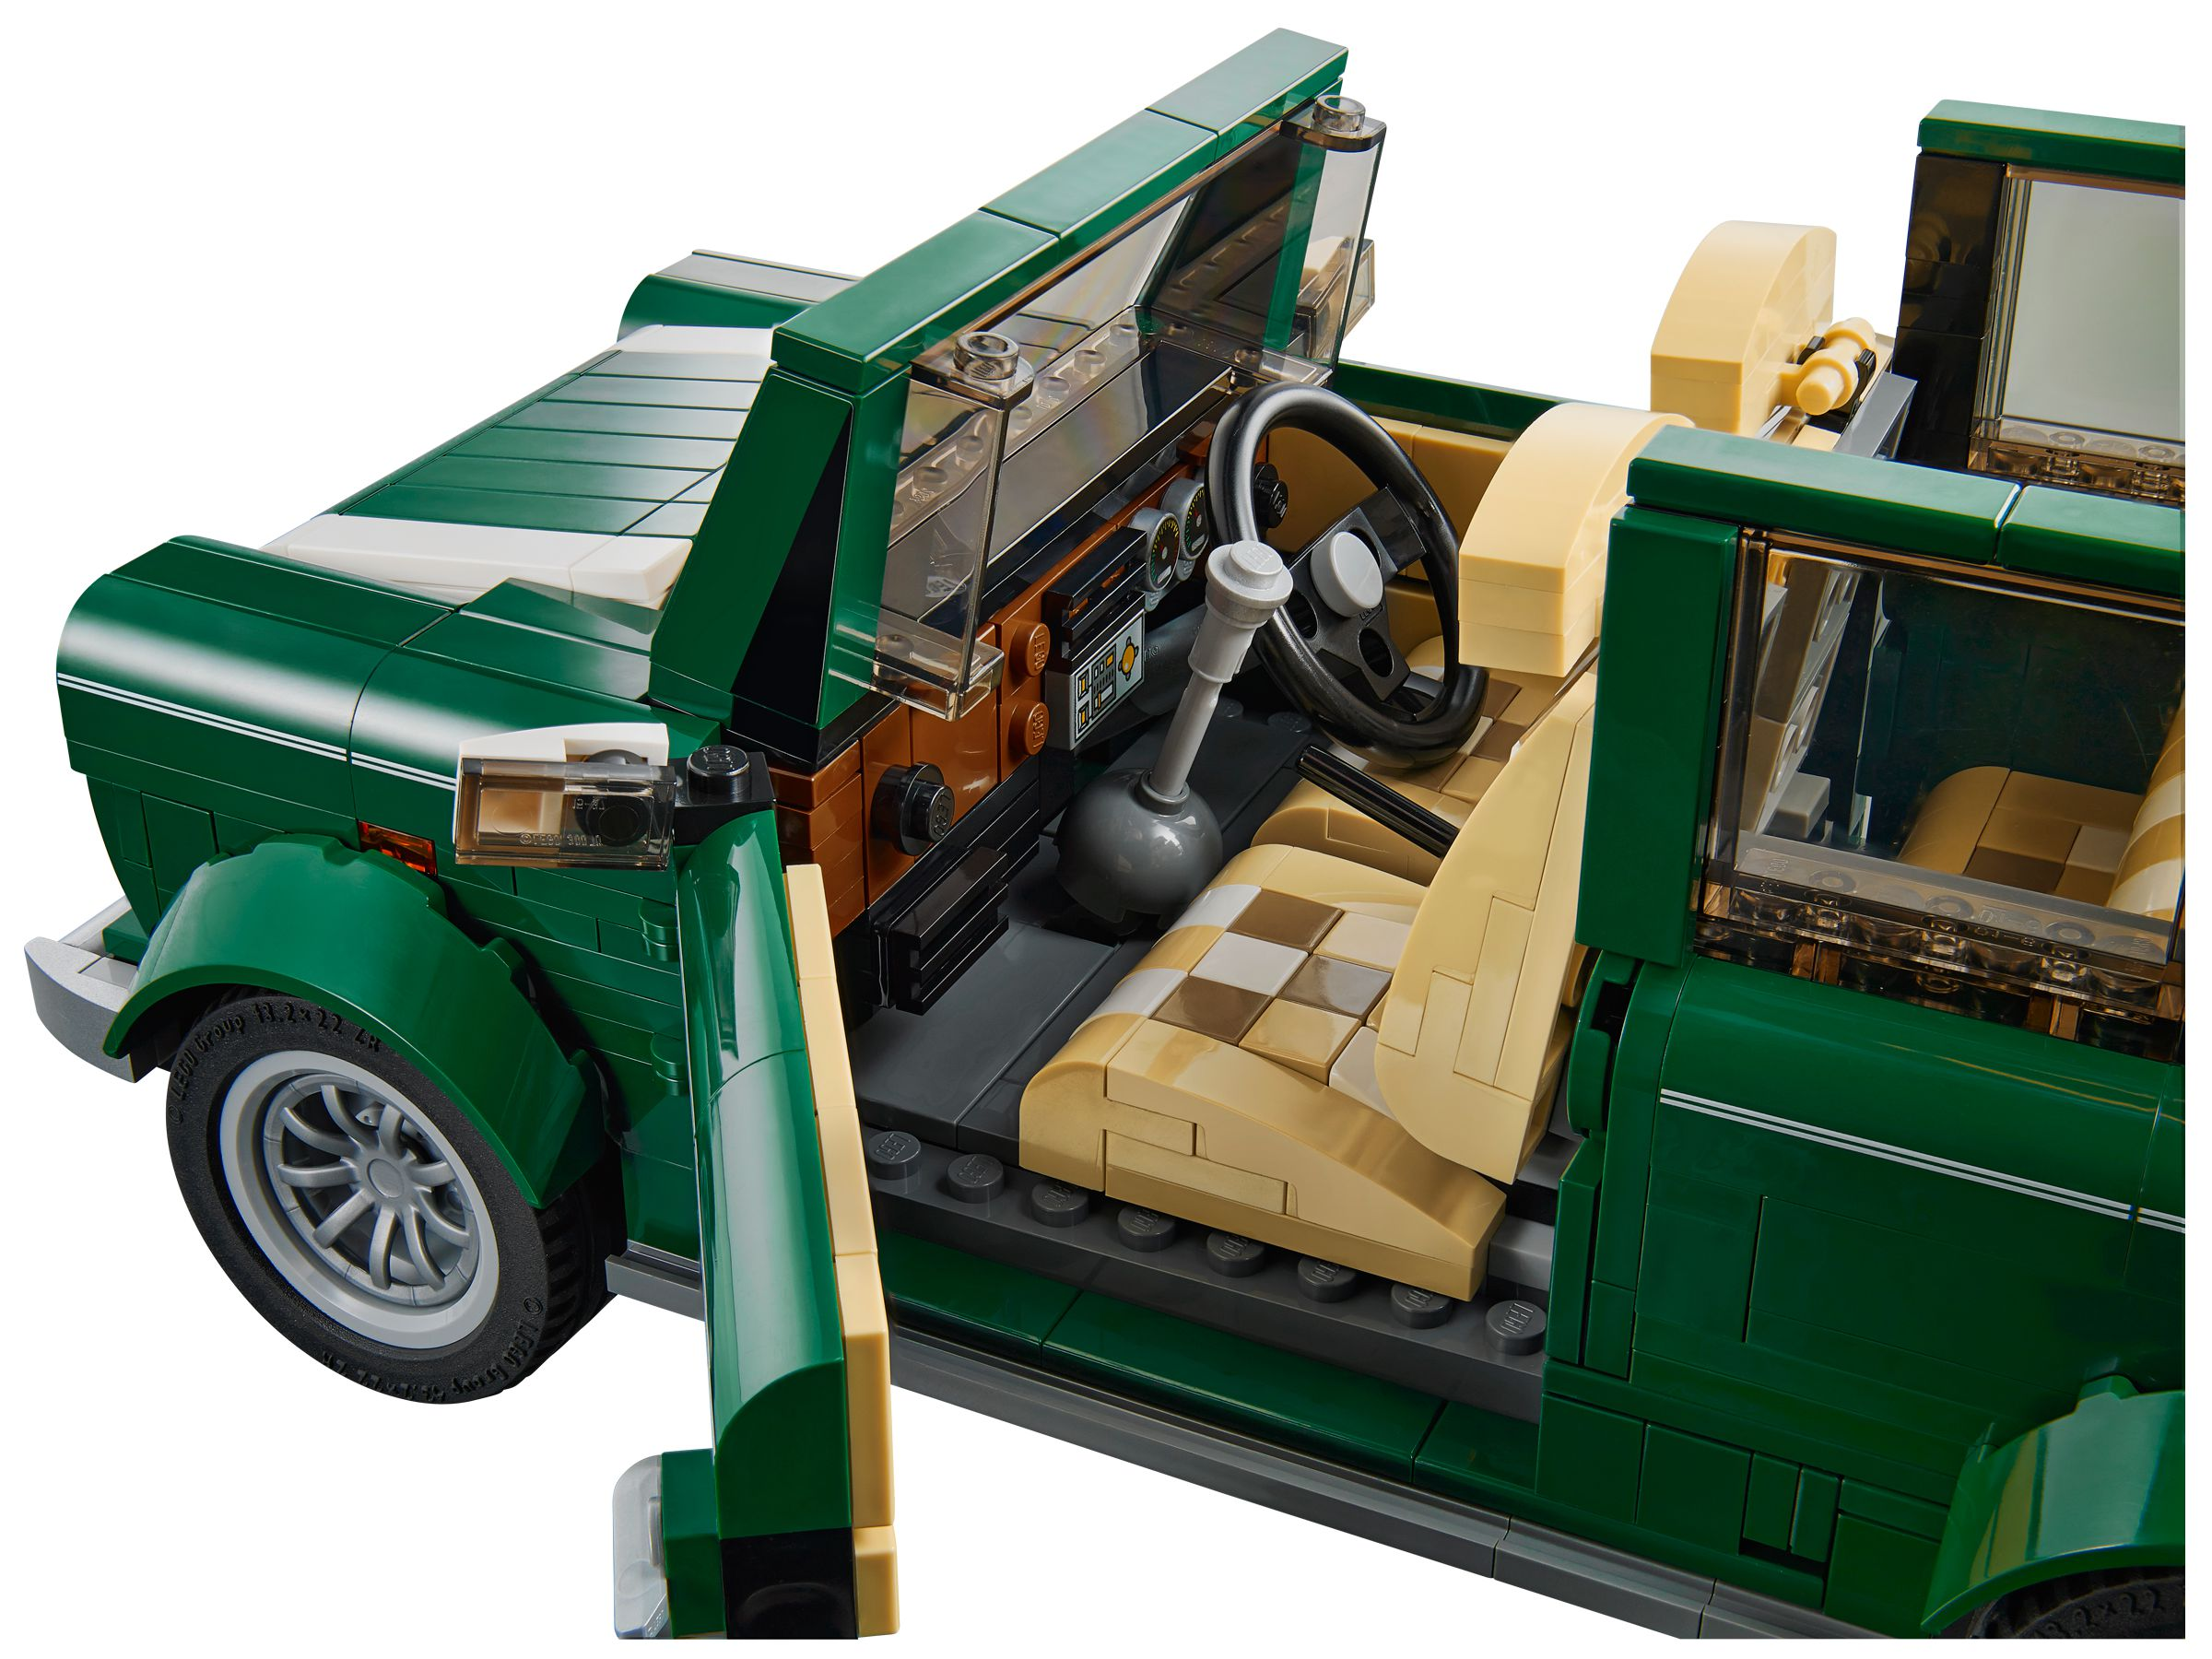 LEGO Advanced Models 10242 MINI Cooper LEGO_10242_alt7.jpg